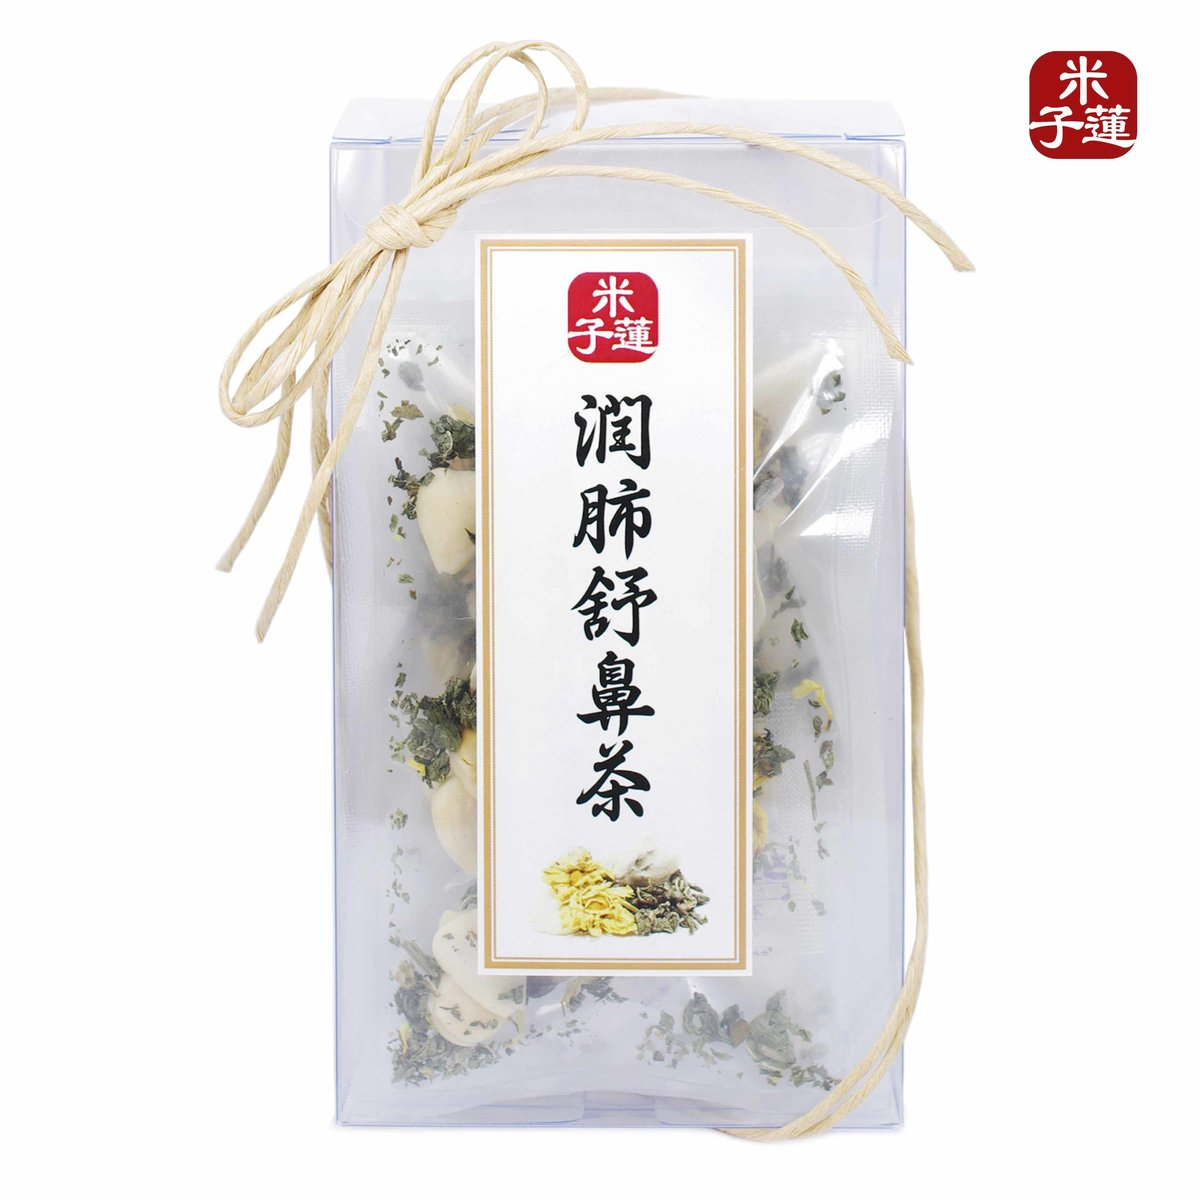 MICCHILIN Herbal Tea - Nourish Lungs and Nose Comforting